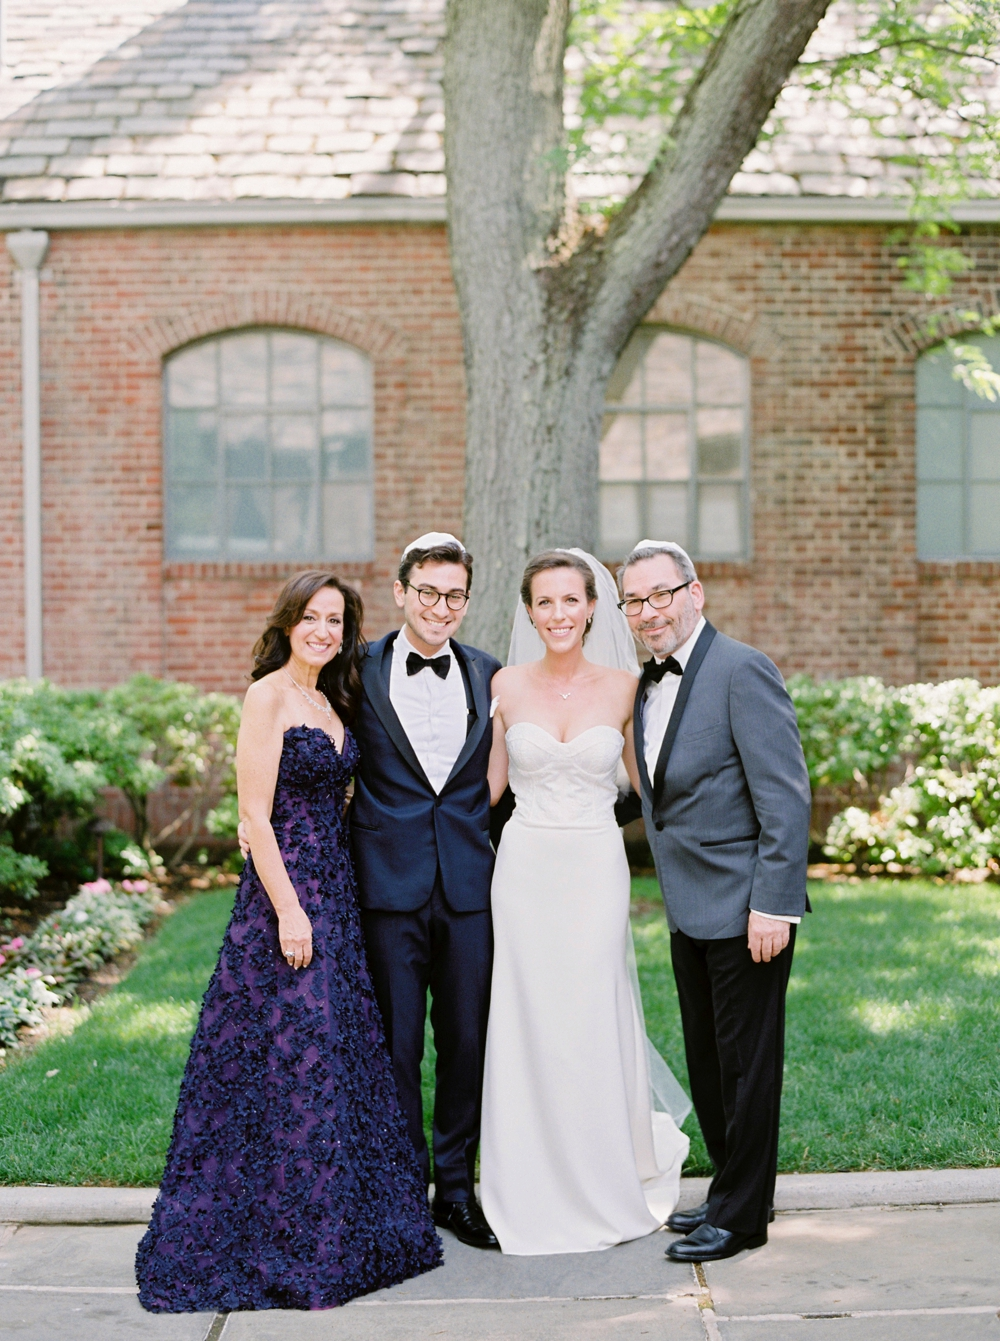 family portraits | Jewish Wedding | New York Wedding Photographers | Brooklyn Dyker Heights Golf course | Justine Milton fine art film wedding photographers